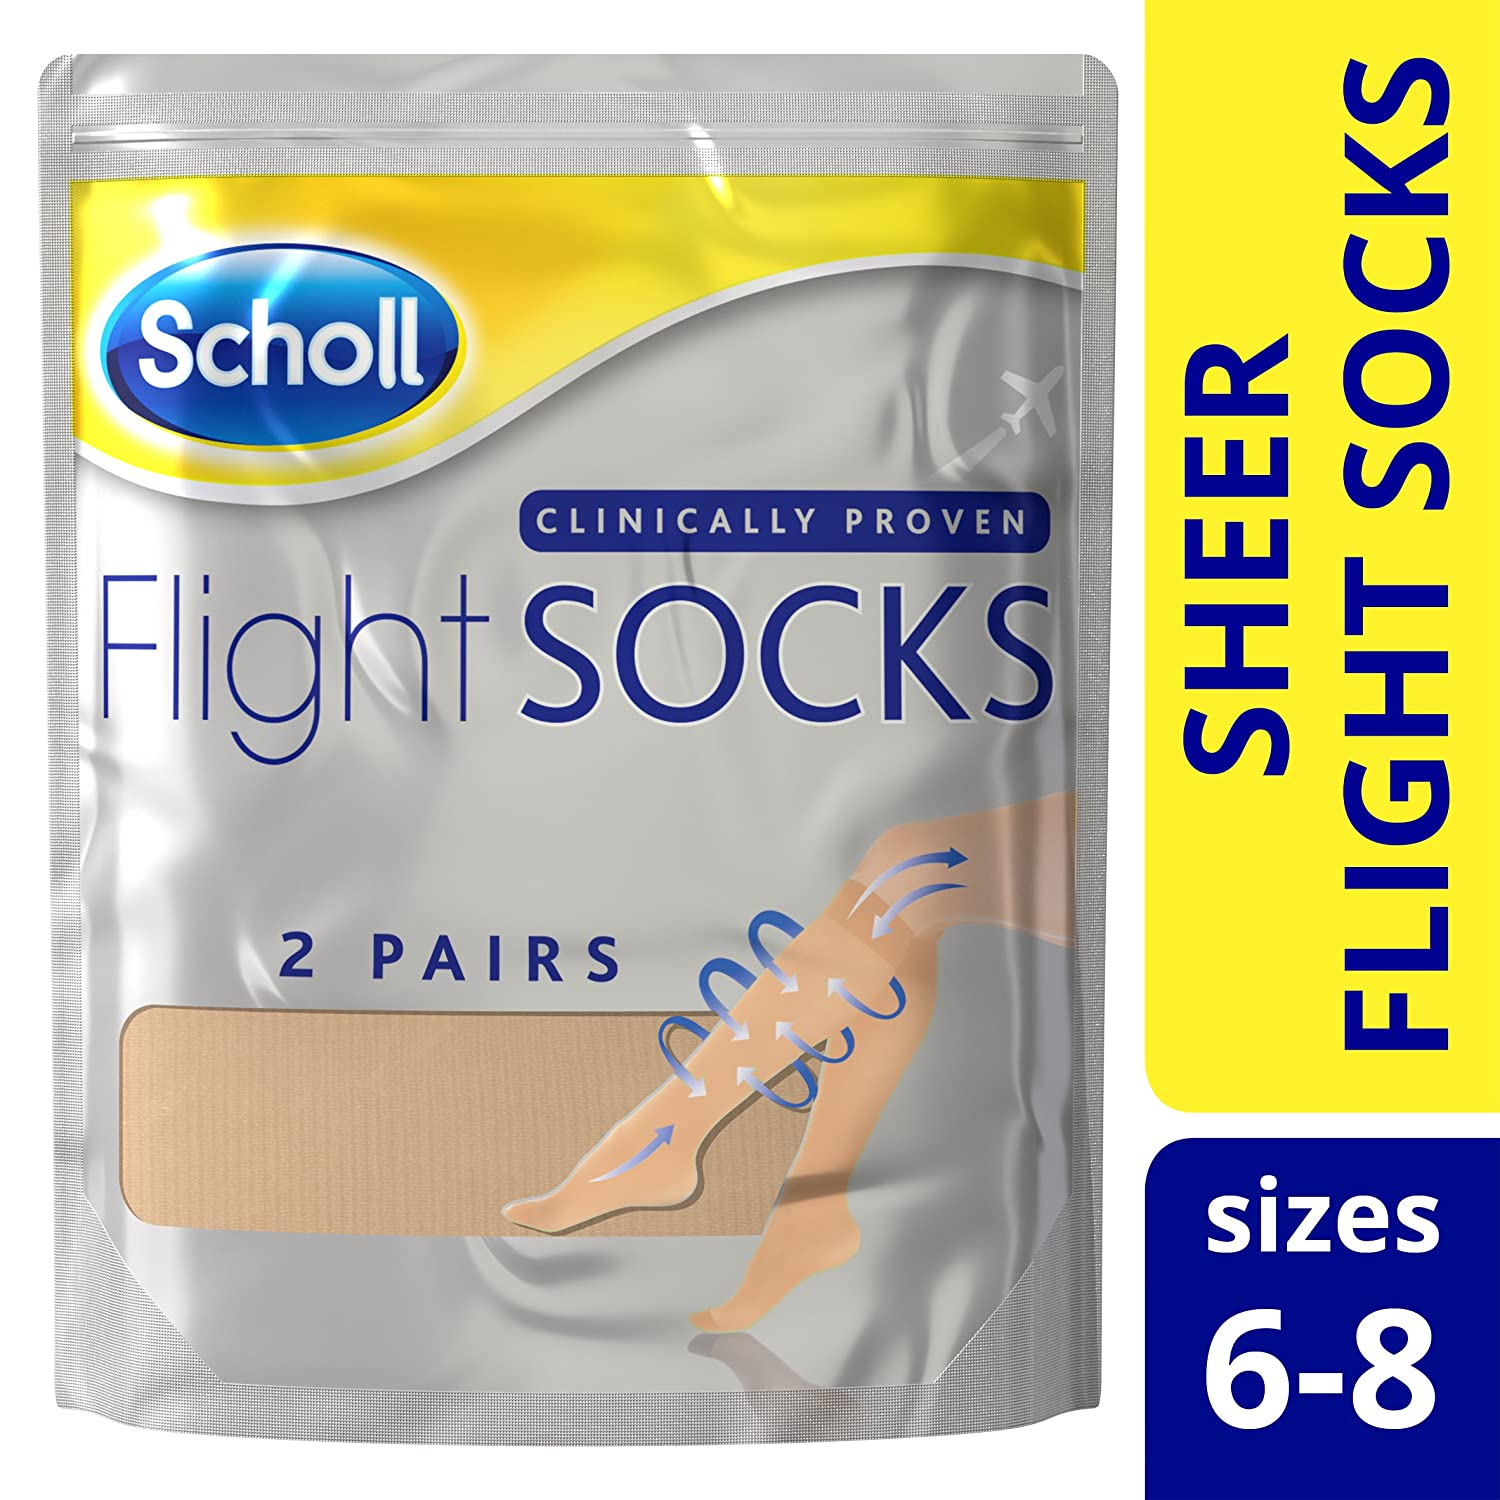 55998a84f1 Scholl Sheer Flight Socks, Size 6-8, 2 Pairs: Amazon.co.uk: Health &  Personal Care